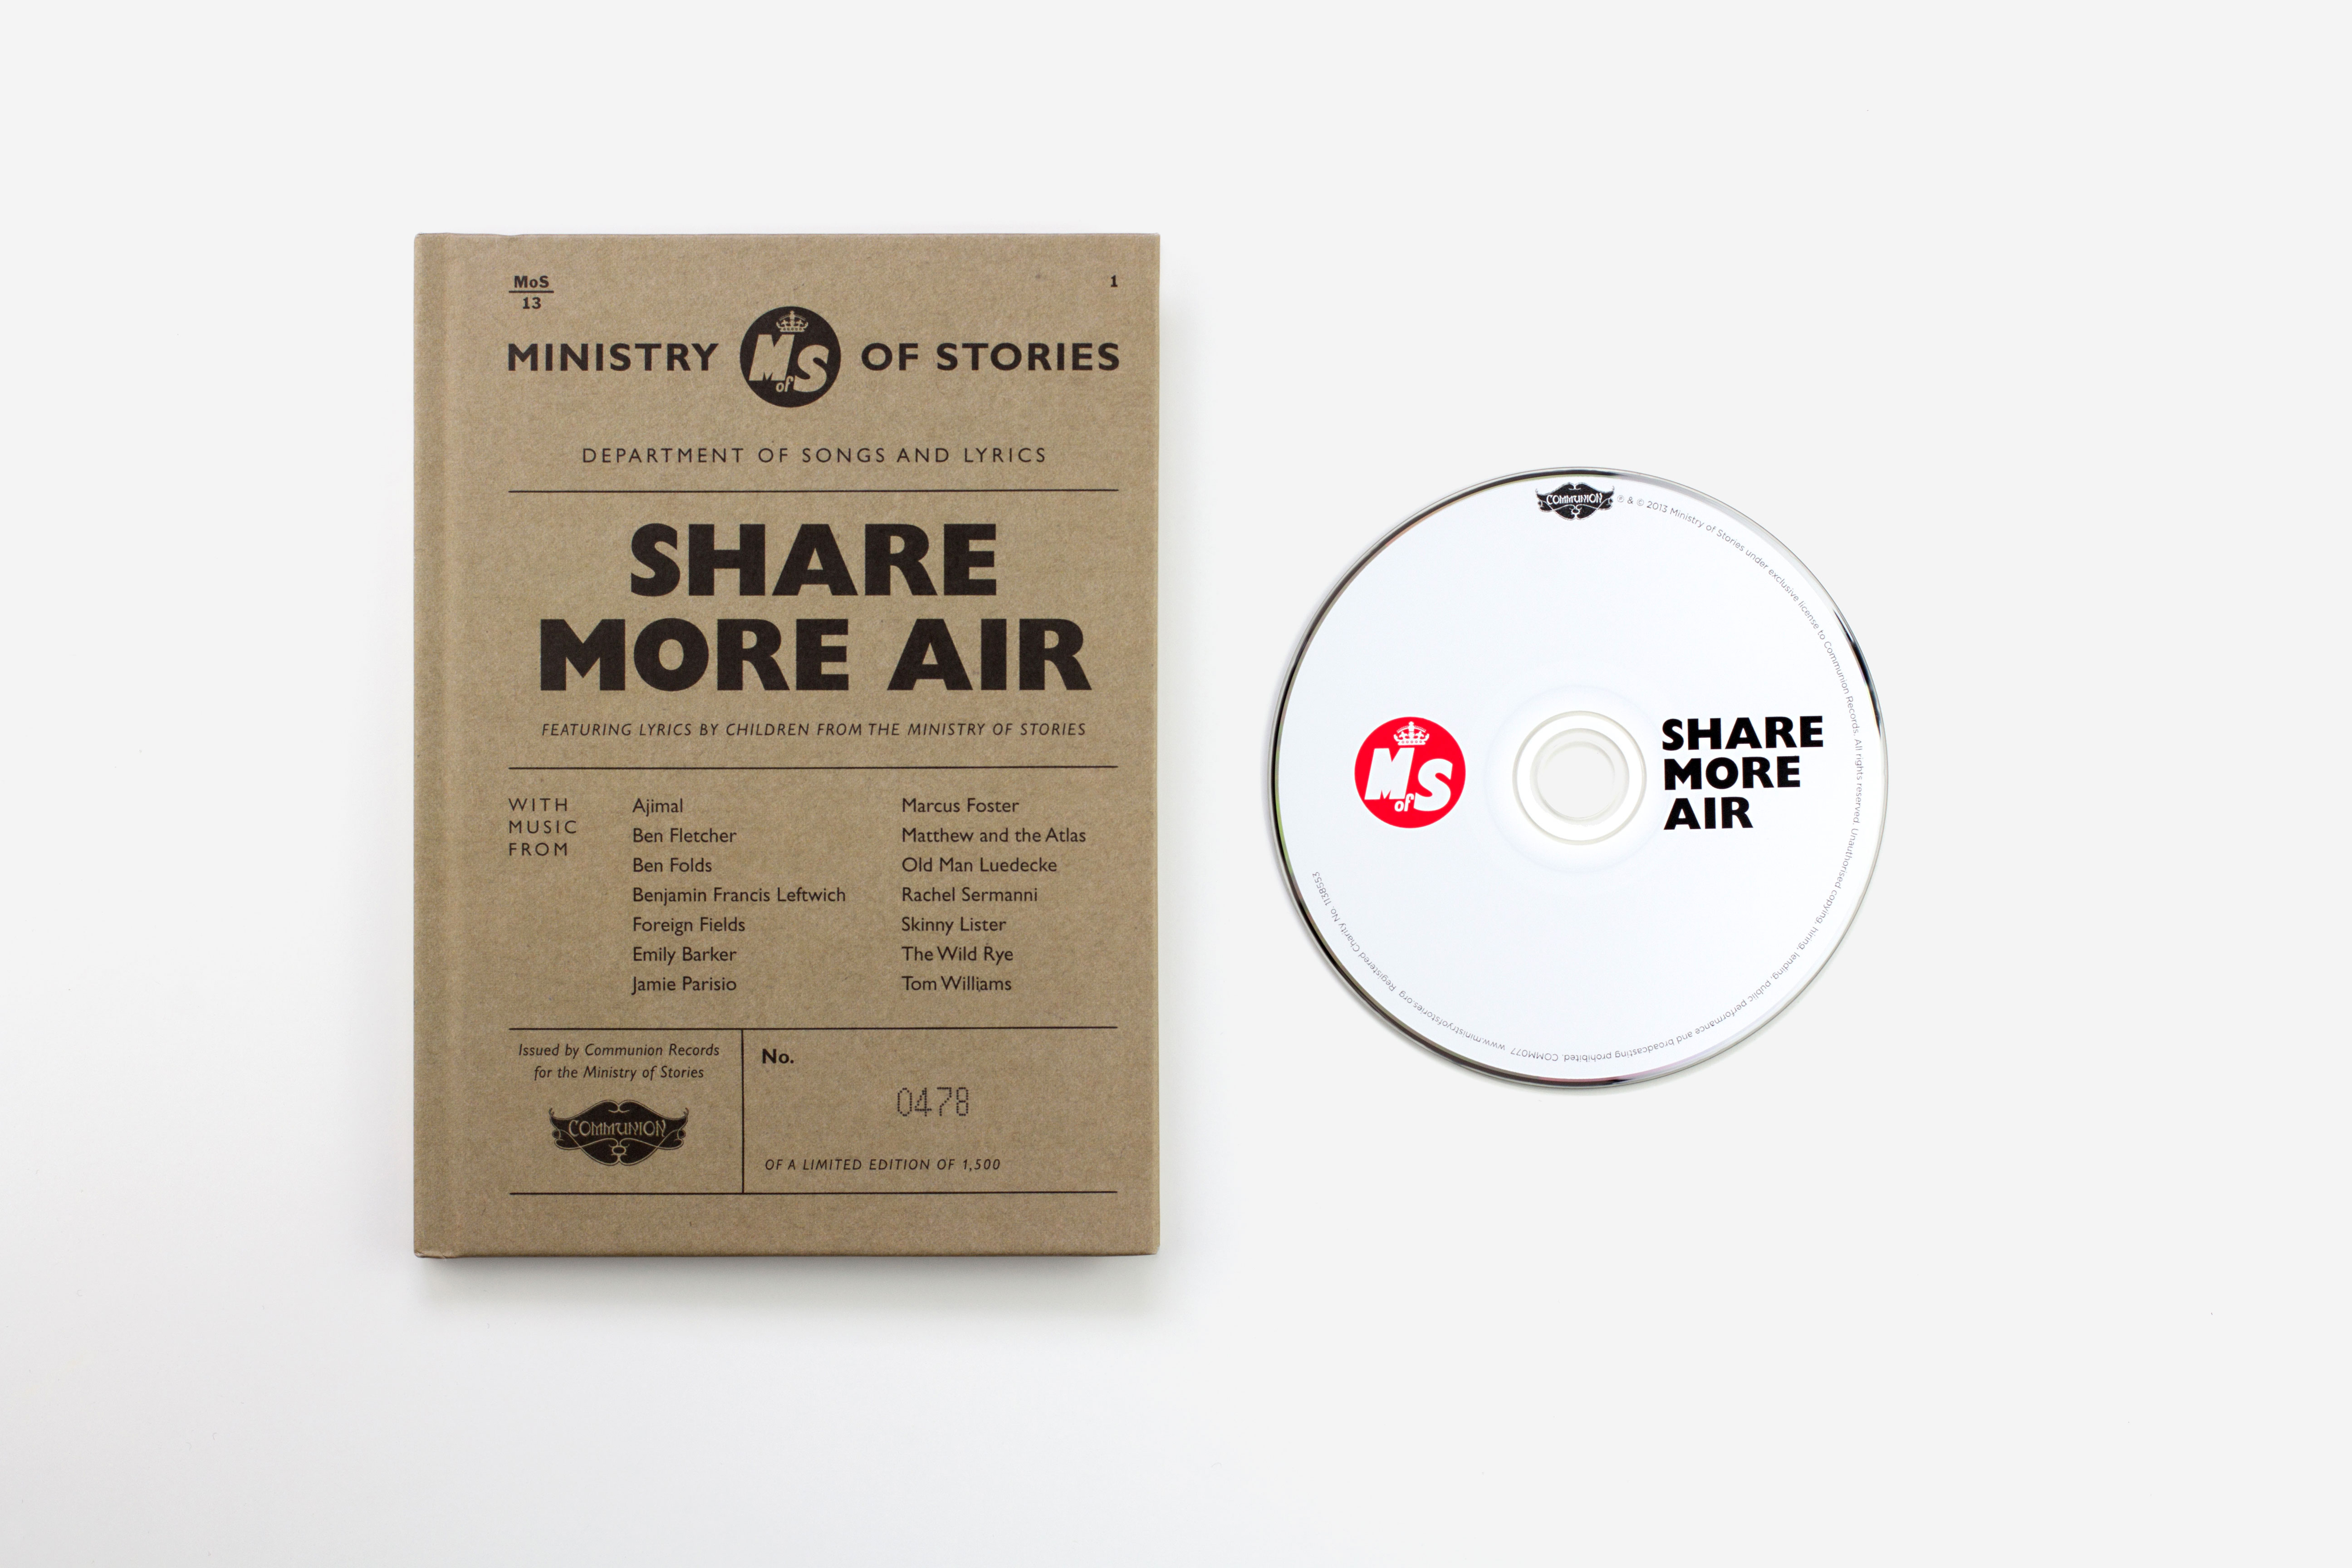 Share-More-Air-3